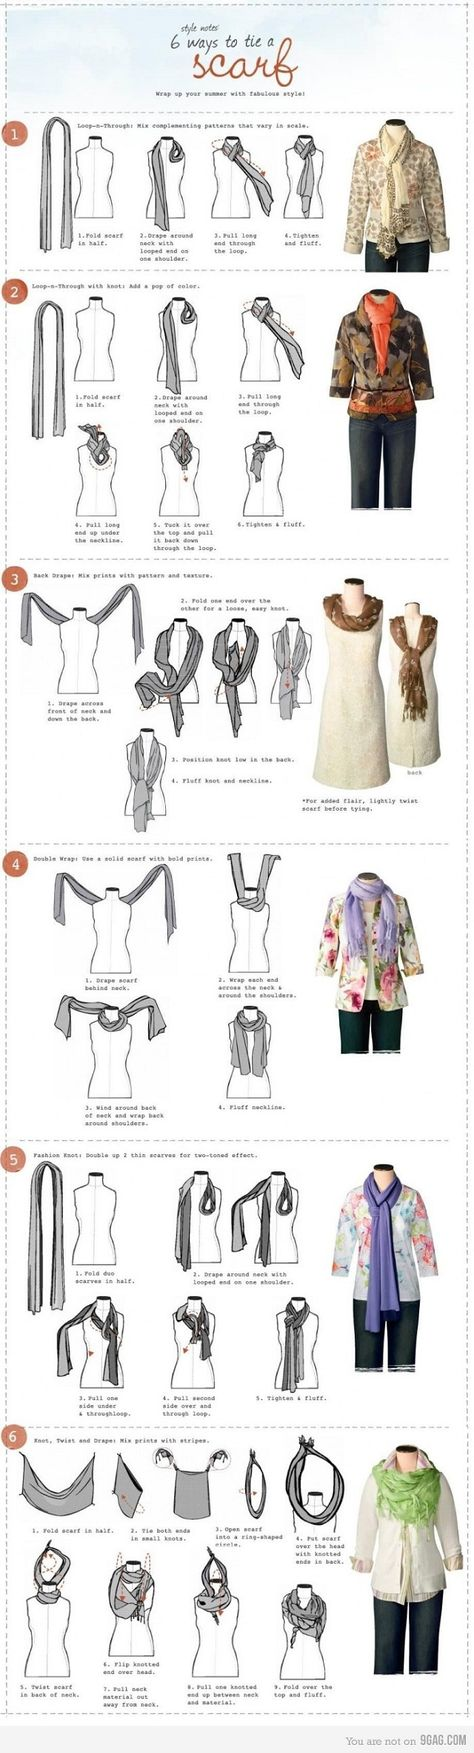 6 brilliant ways to tie a scarf